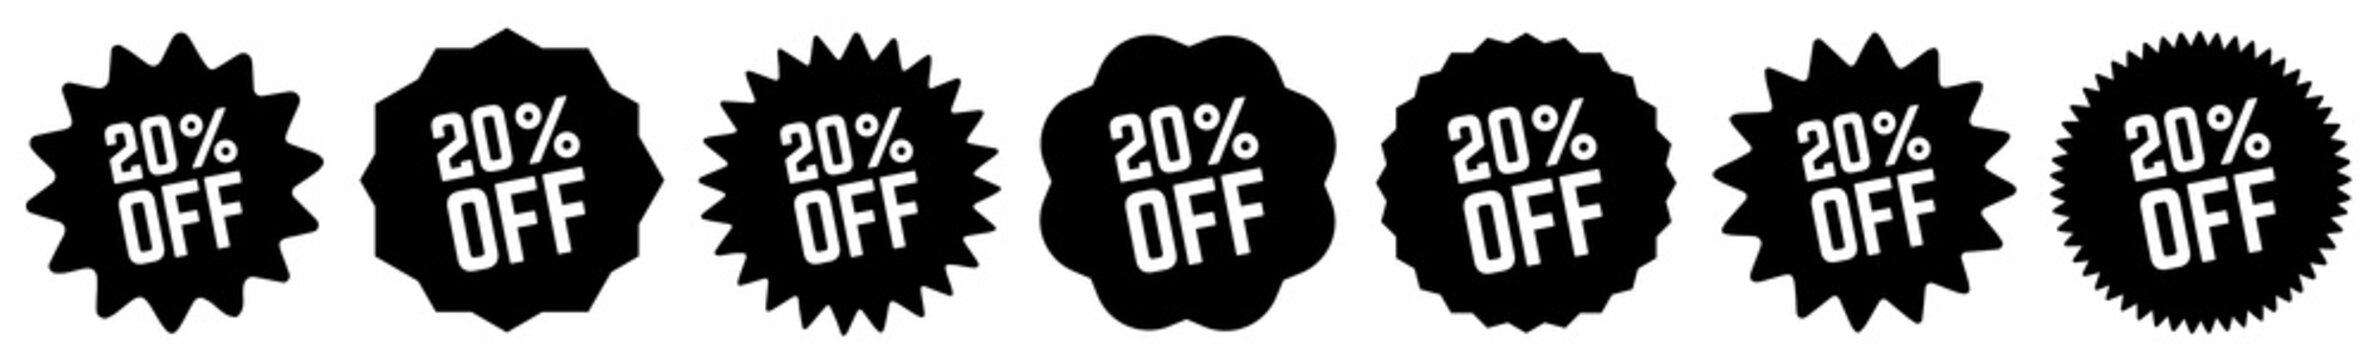 20 Percent OFF Discount Tag Black | Special Offer Icon | Sale Sticker | Deal Label | Variations